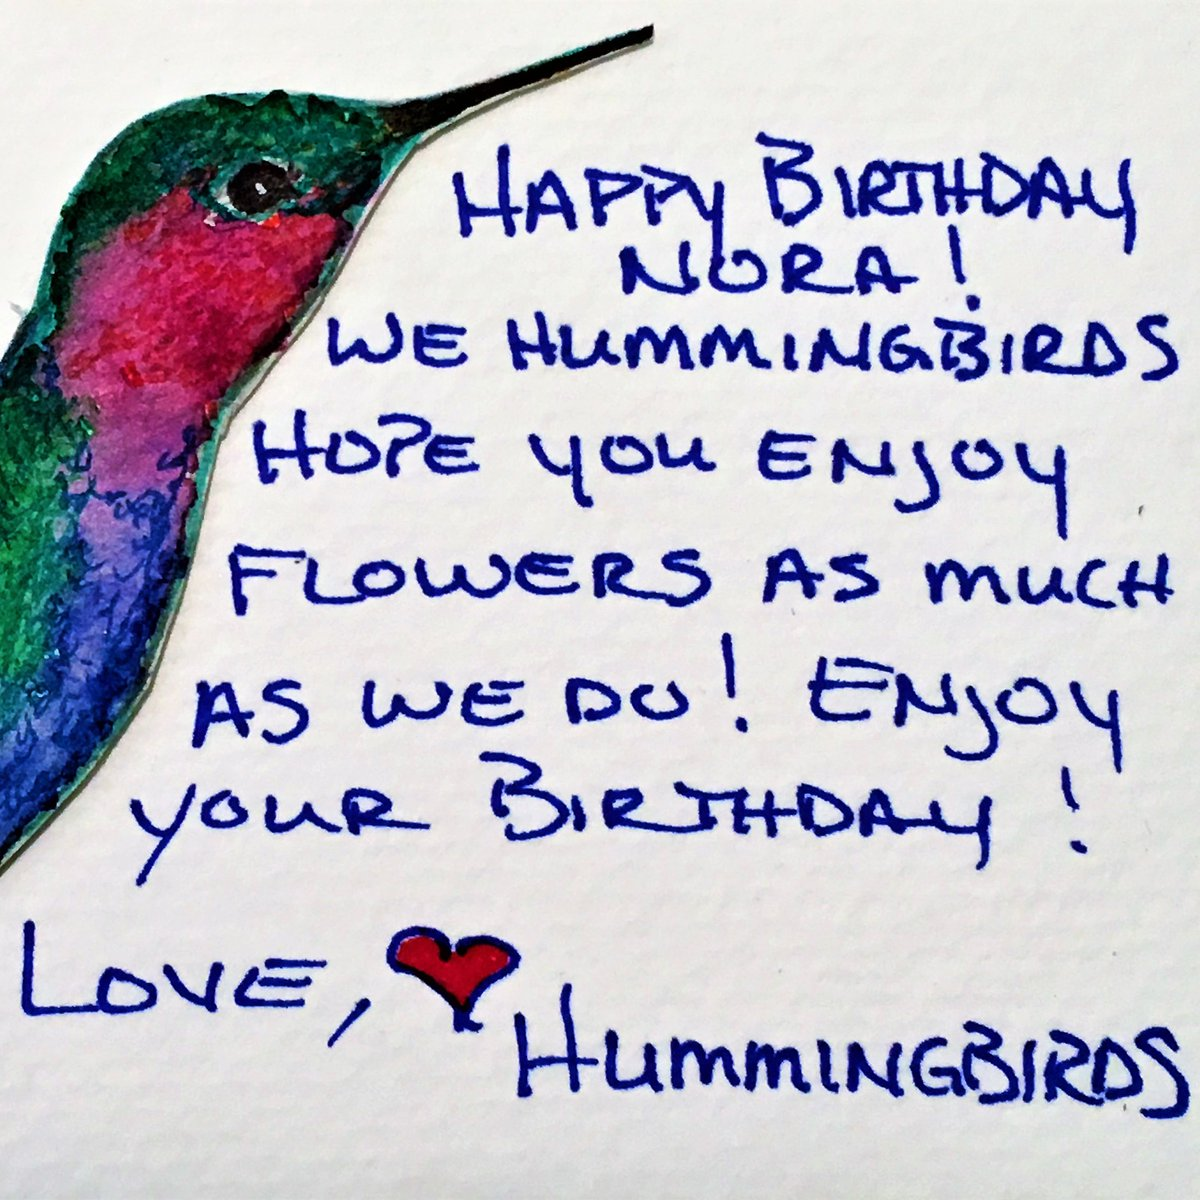 #every20minutes I feel grateful for being a grandmother to two wonderful granddaughters because then I get to make birthday cards for them to show them how special they are to me. <br>http://pic.twitter.com/1ox6qWFIfj